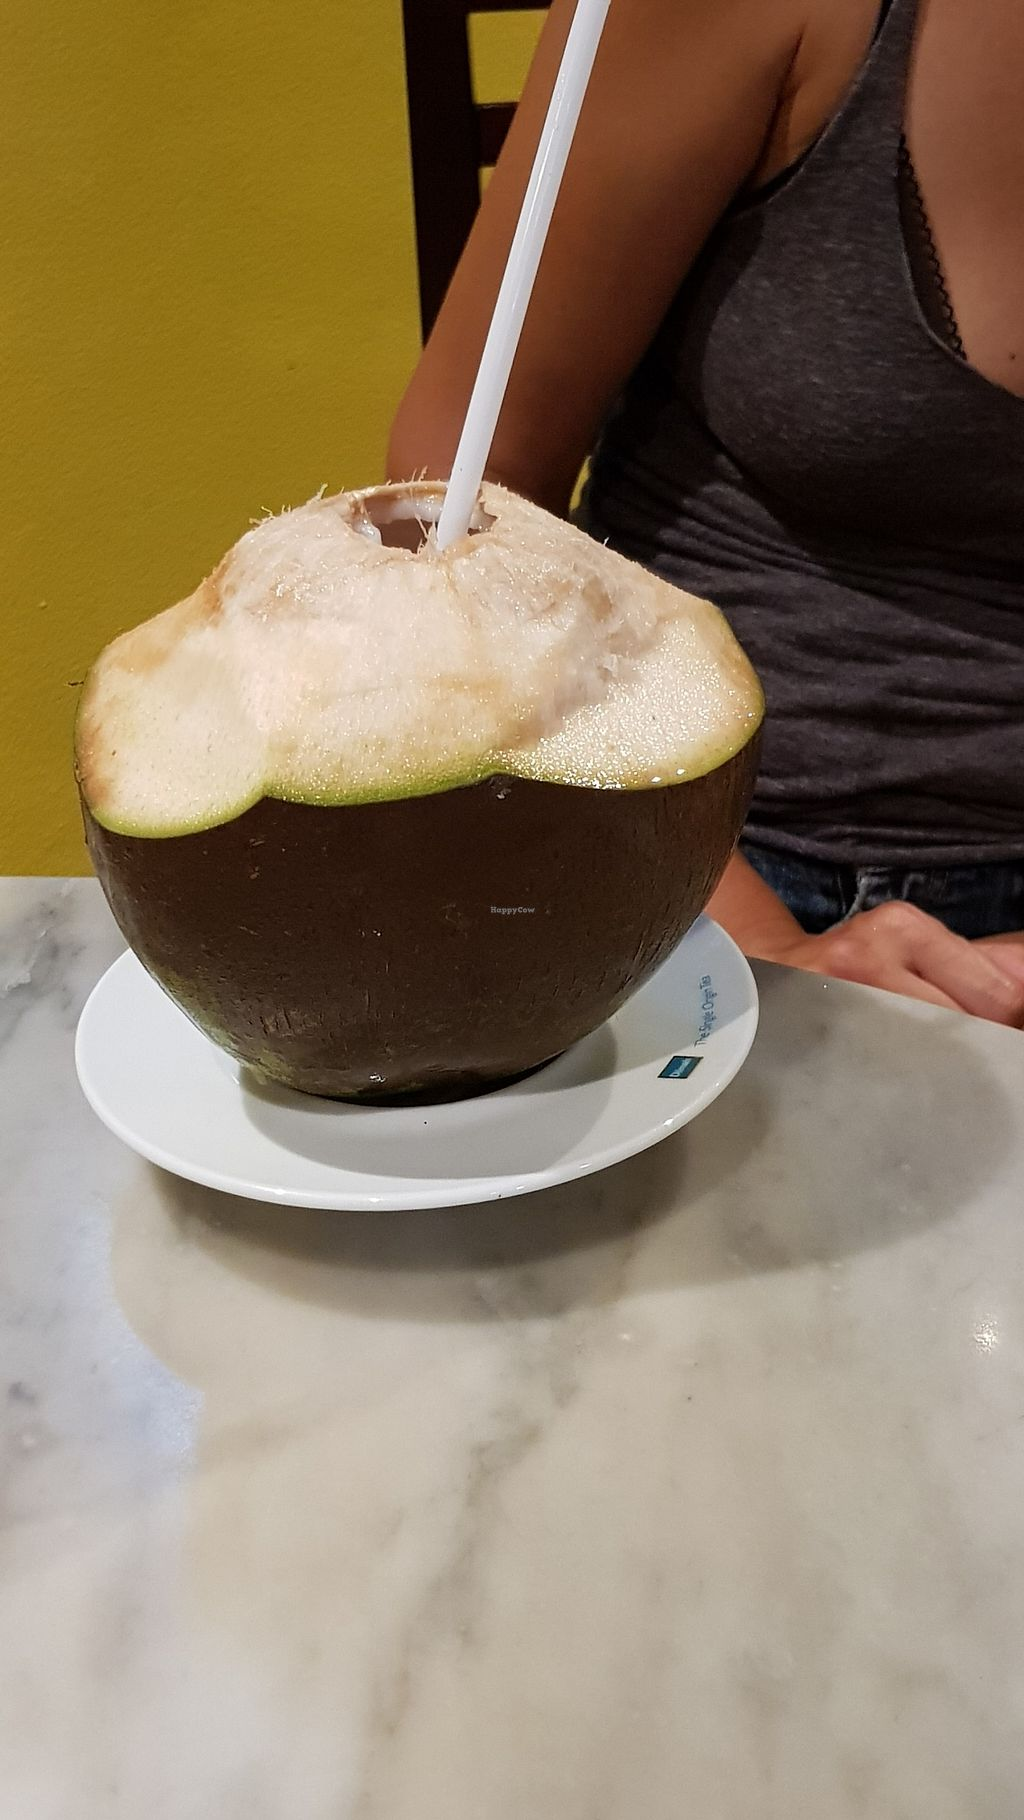 """Photo of Bulaccino Cafe  by <a href=""""/members/profile/Hotfuzzy69"""">Hotfuzzy69</a> <br/>Fresh coconut! :) <br/> February 4, 2018  - <a href='/contact/abuse/image/111120/354765'>Report</a>"""